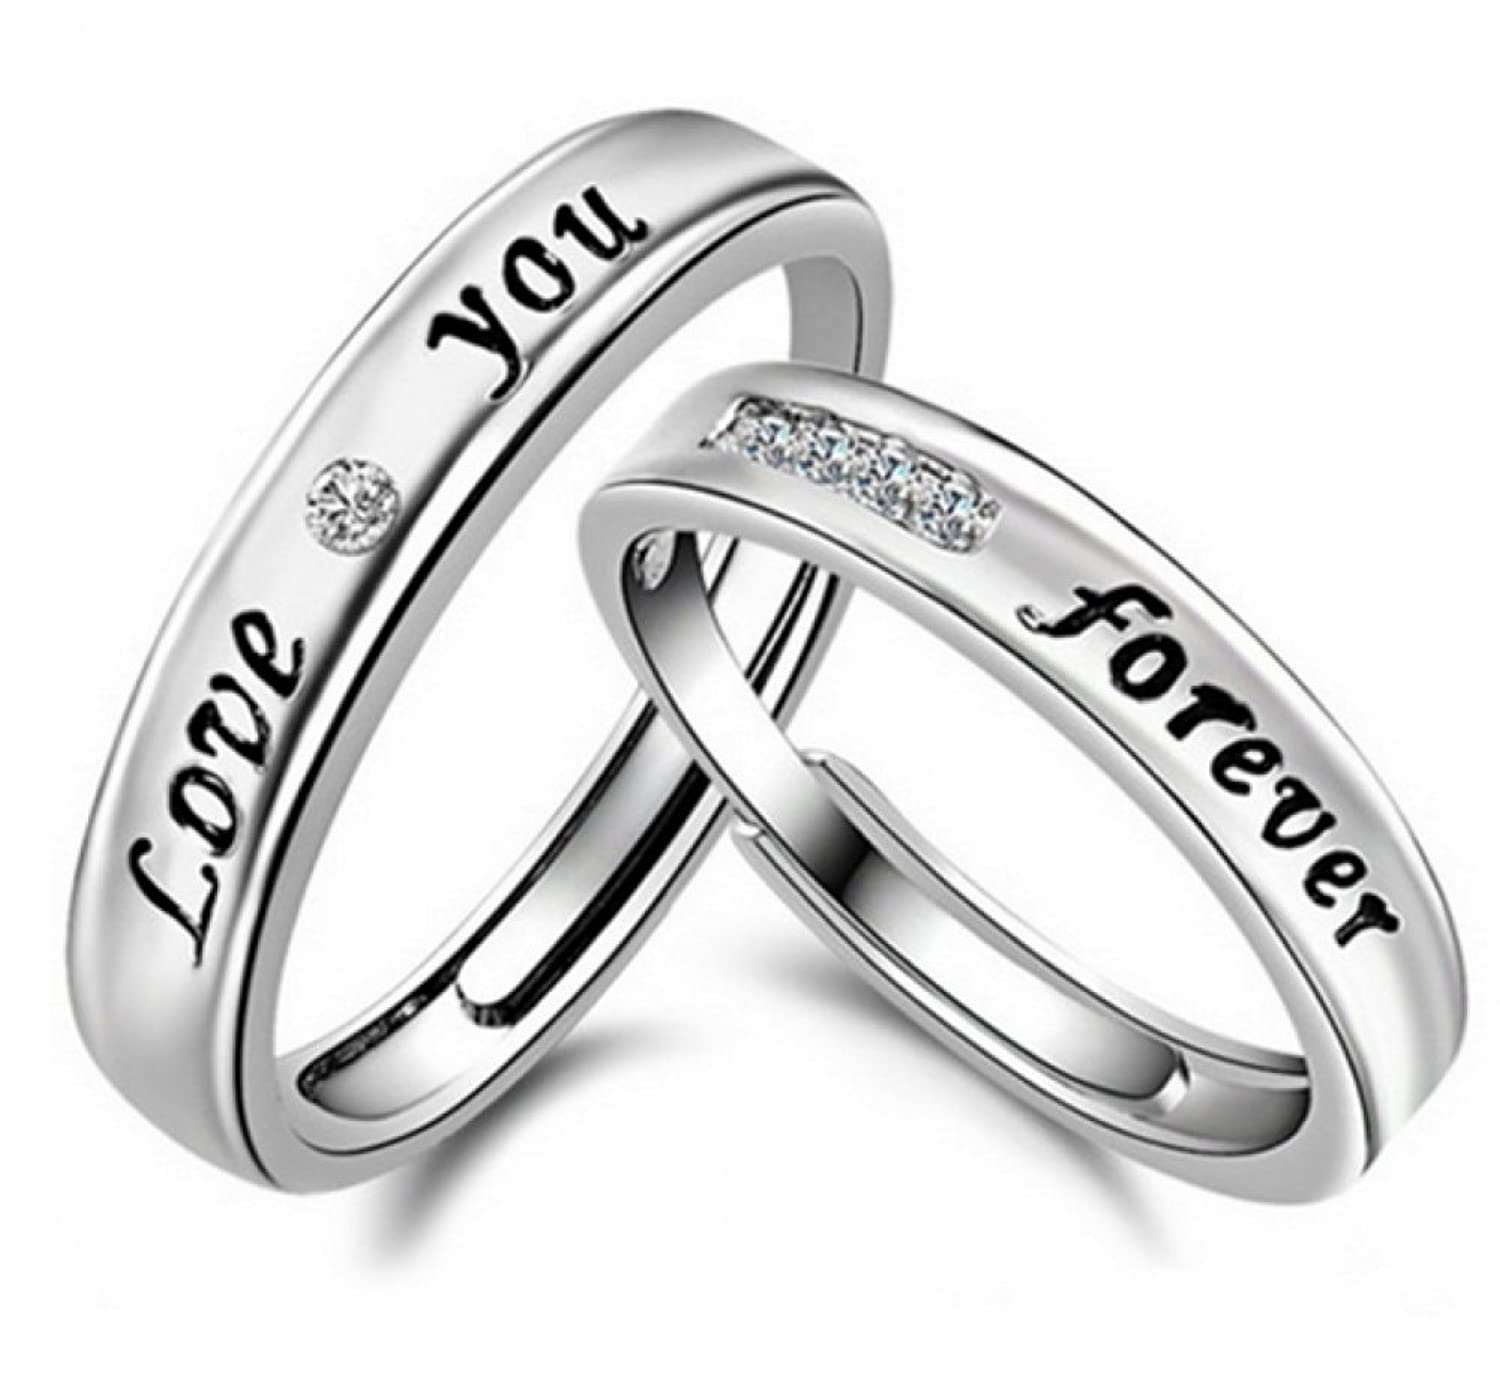 couple finish channel gold set ring promise az evermarker stainless rose wedding rings sandblast products band grooved